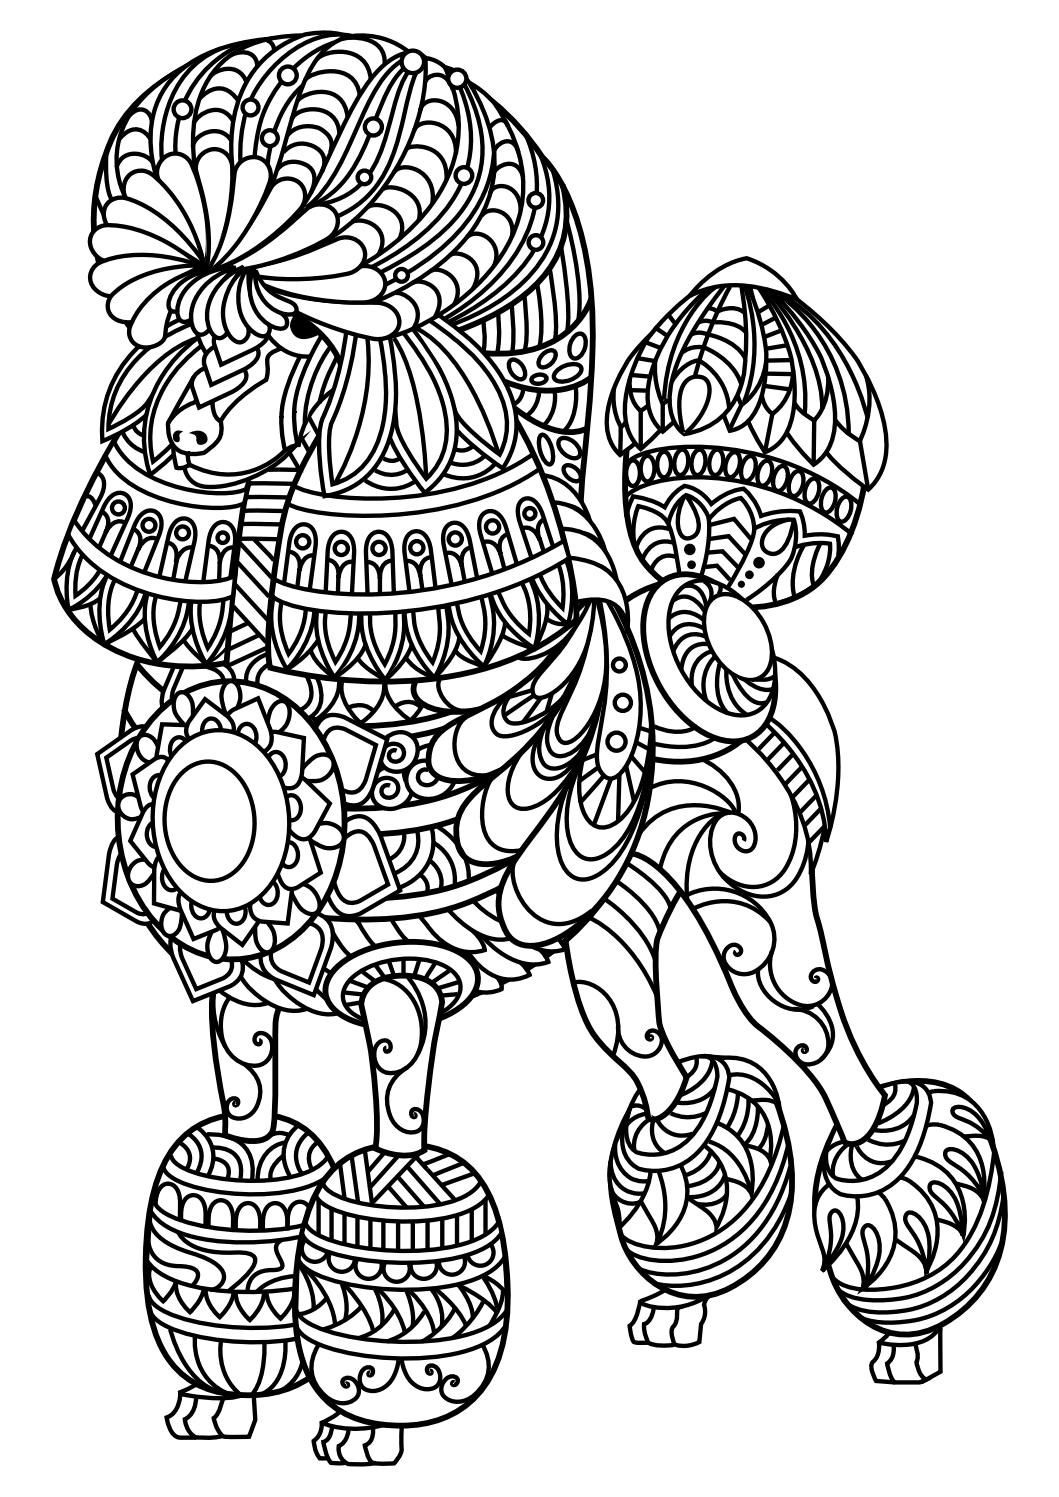 Animal coloring pages pdf Dog coloring page, Mandala